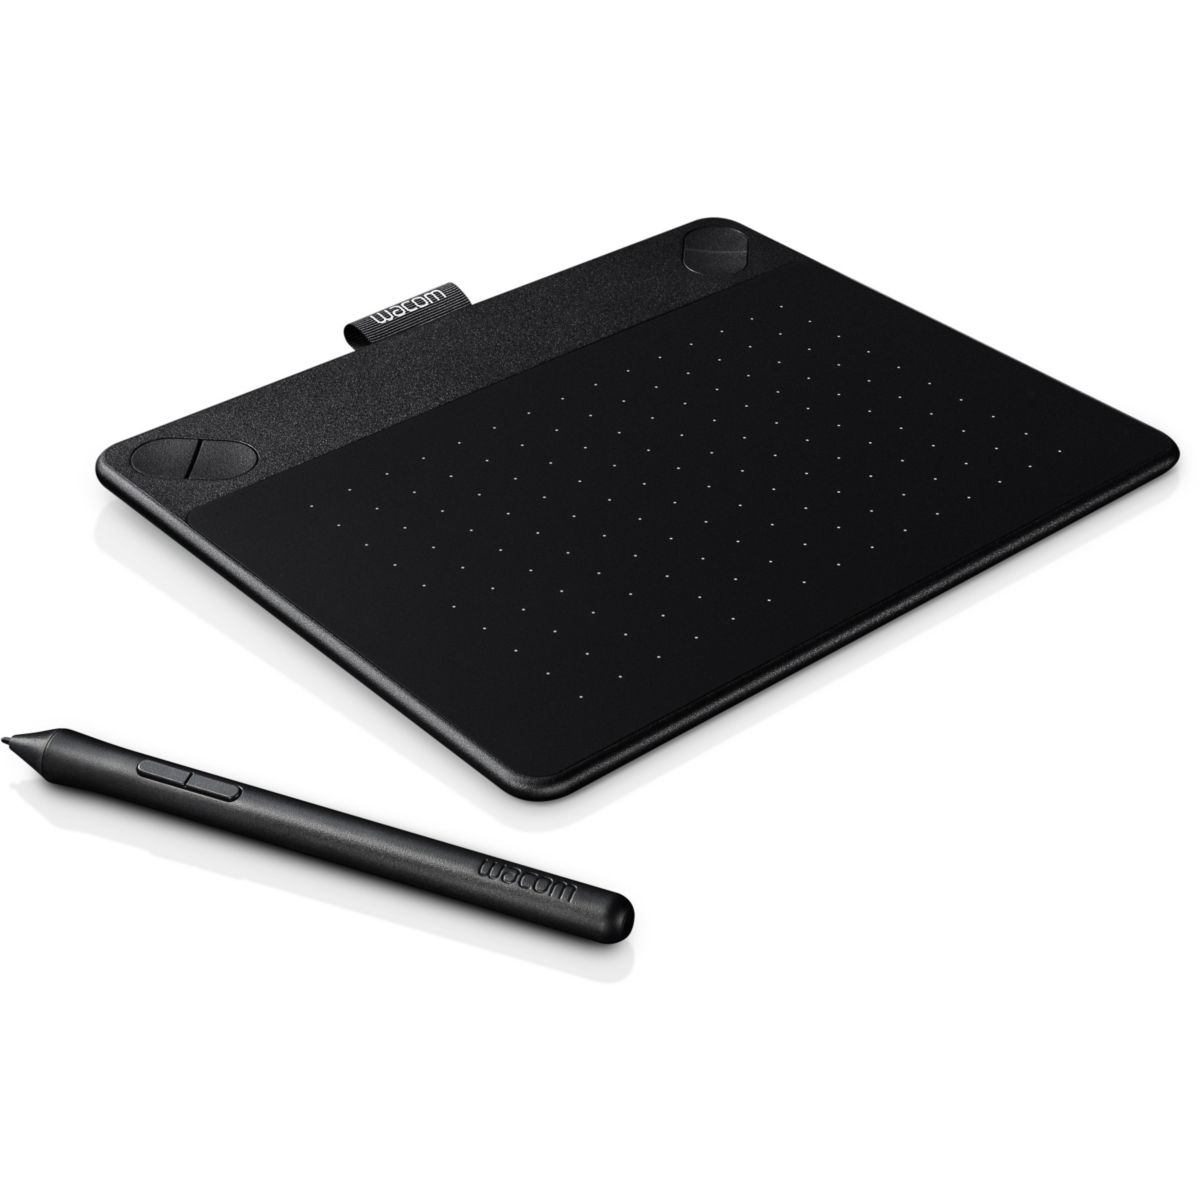 Tablette graphique wacom intuos comic black – 5 € de remise : code cash5